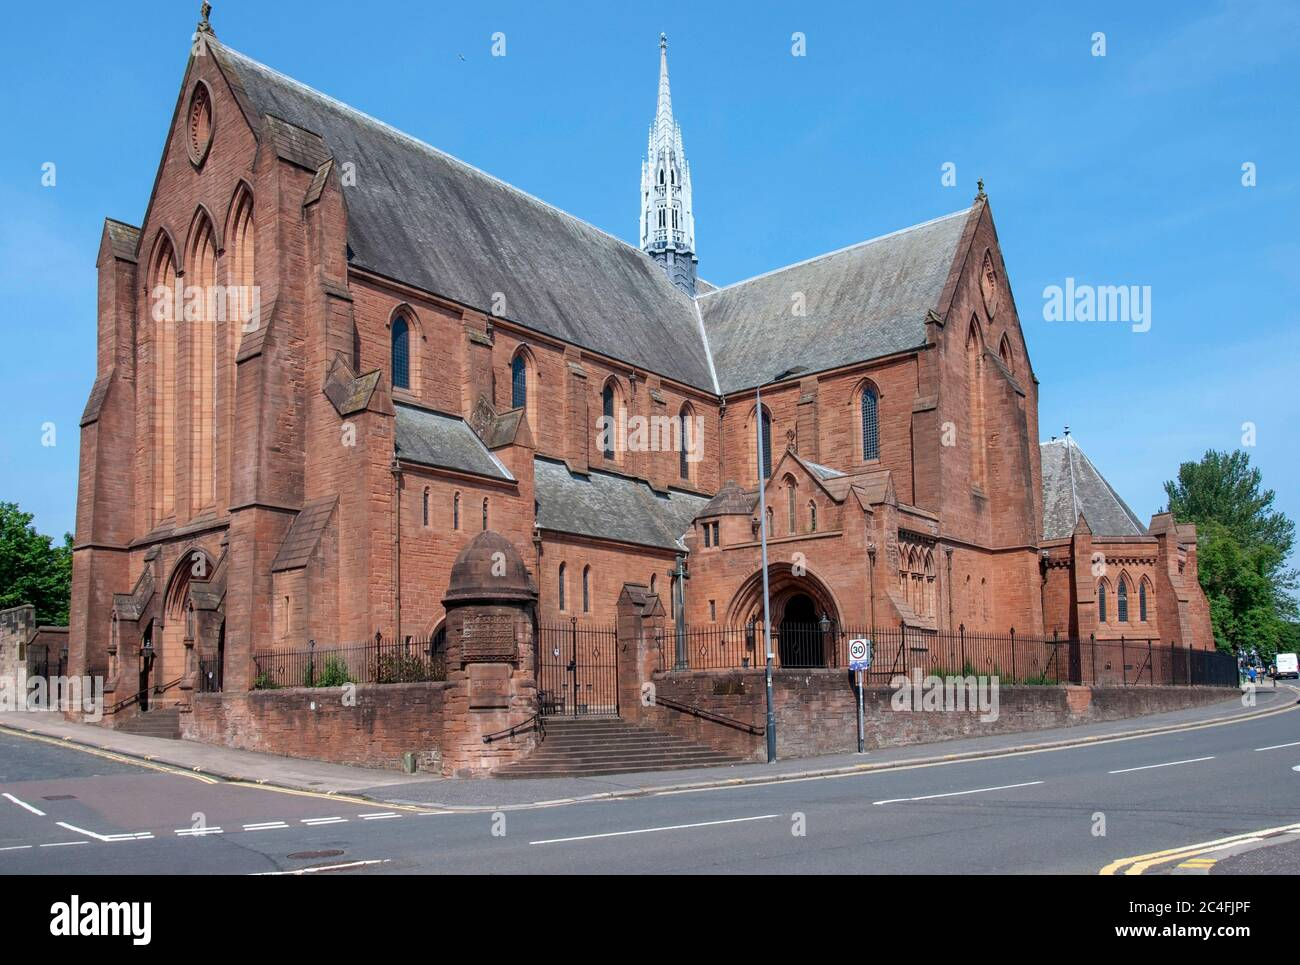 The University of Strathclyde Barony Church Hall Castle Street Glasgow Scotland United Kingdom exterior view red sandstone victorian gothic former chu Stock Photo